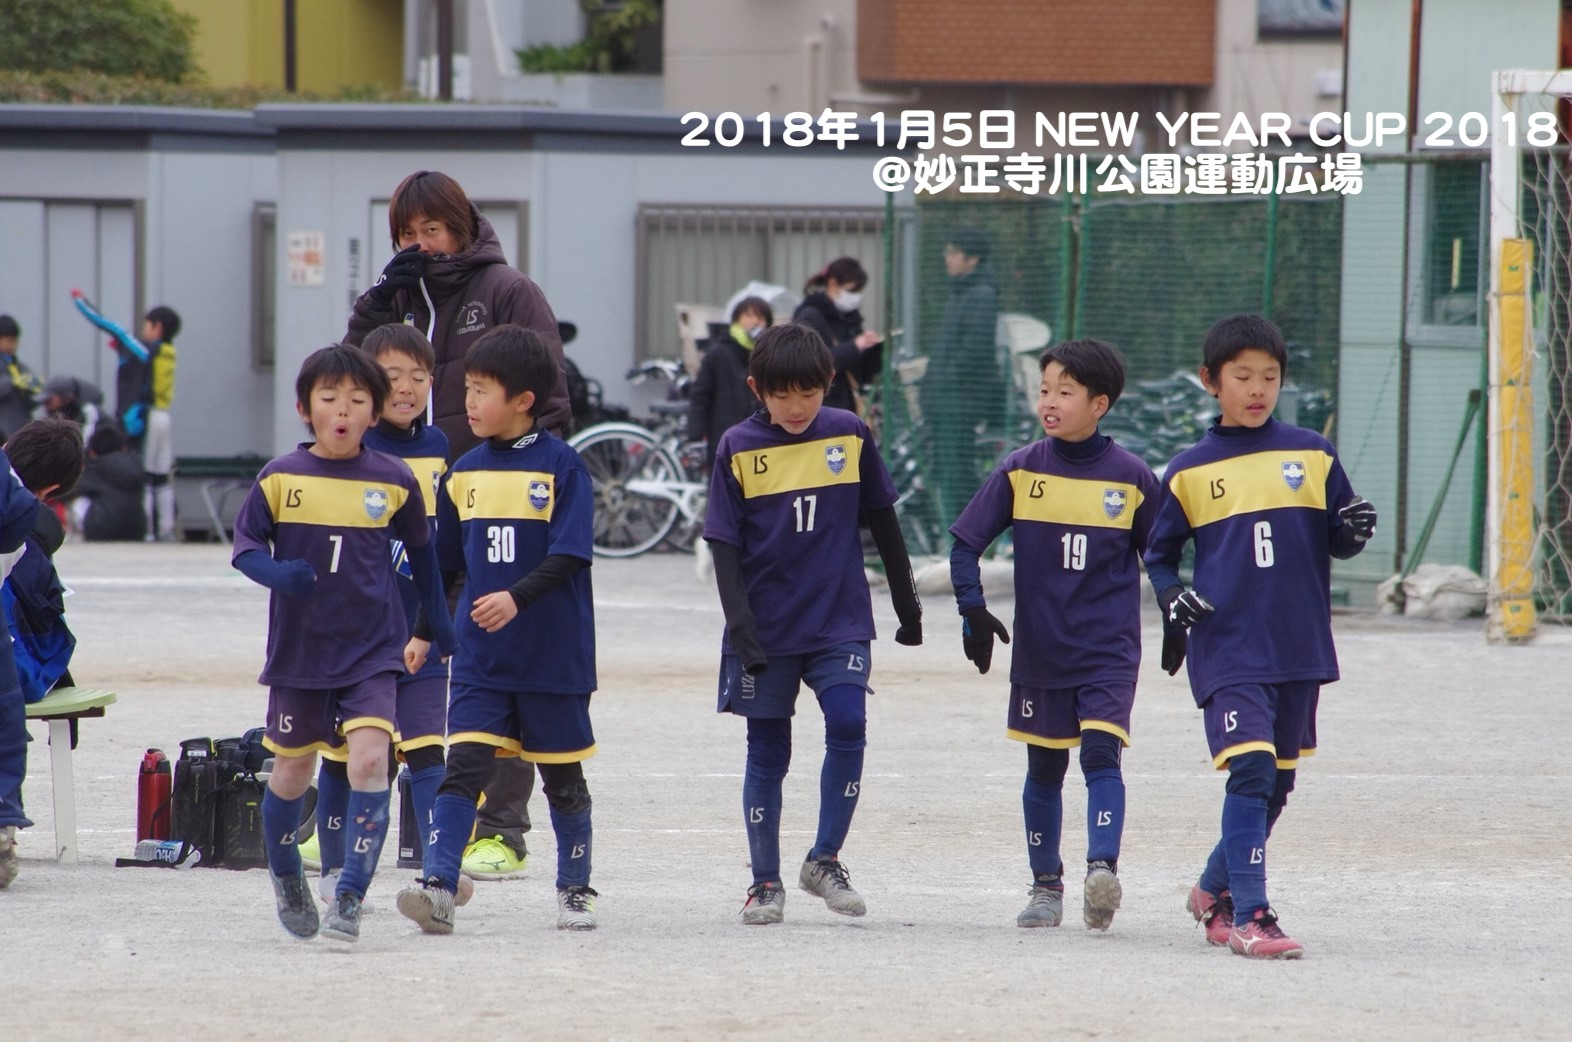 180105 NEWYEARCUP